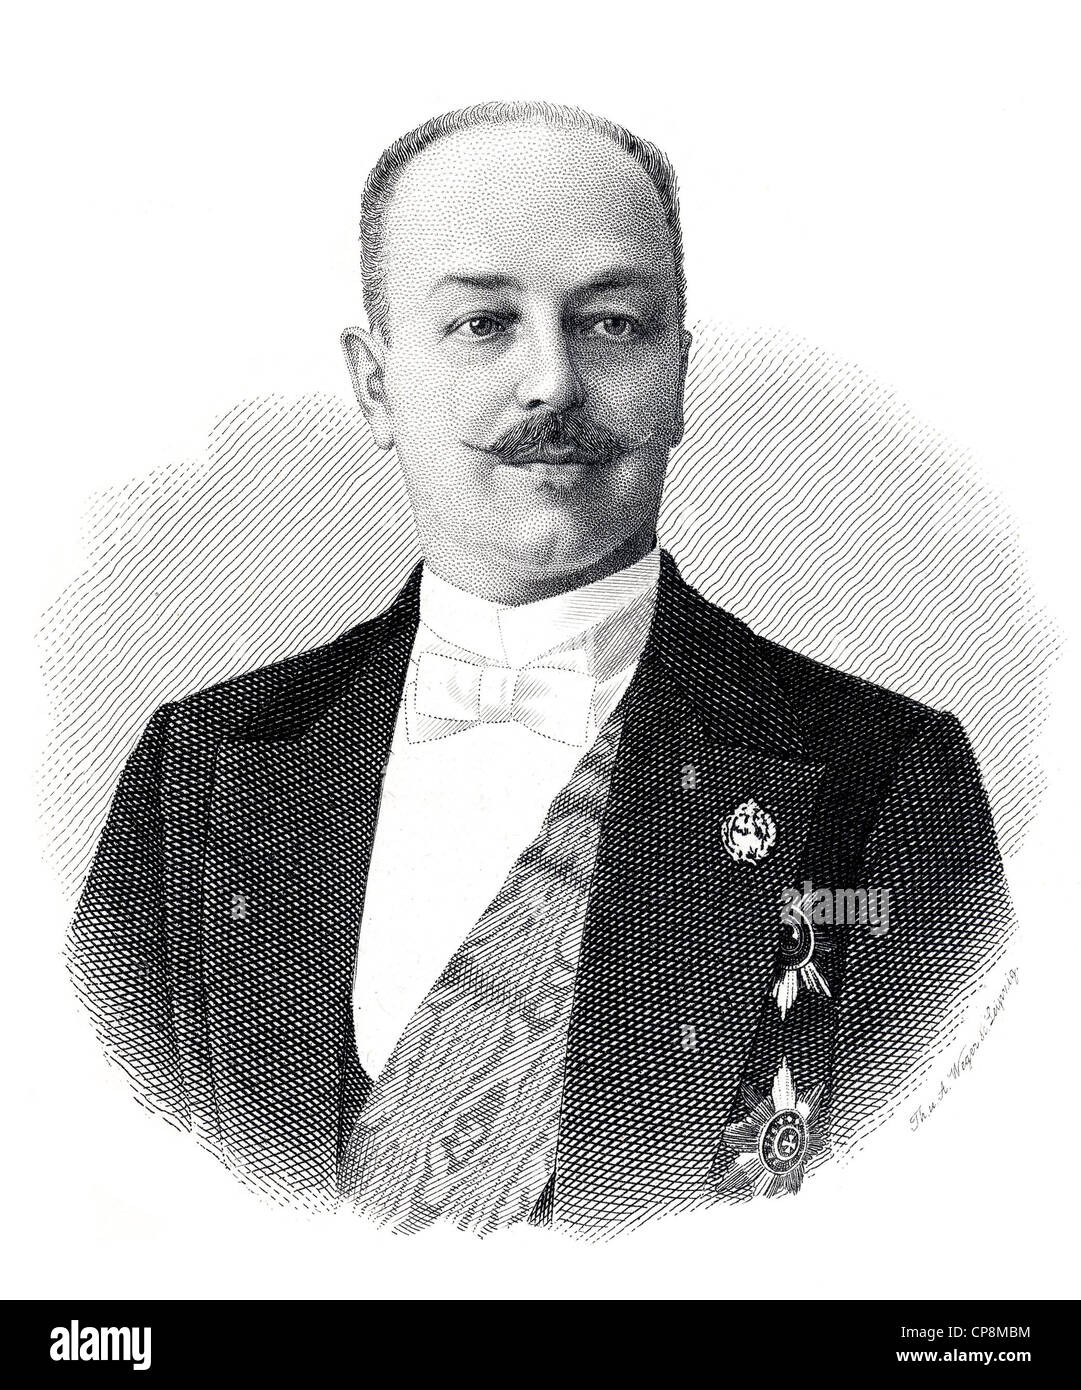 Vladimir Nikolayevich Count Lamsdorf, a Russian diplomat and statesman of Baltic German descent, foreign minister - Stock Image